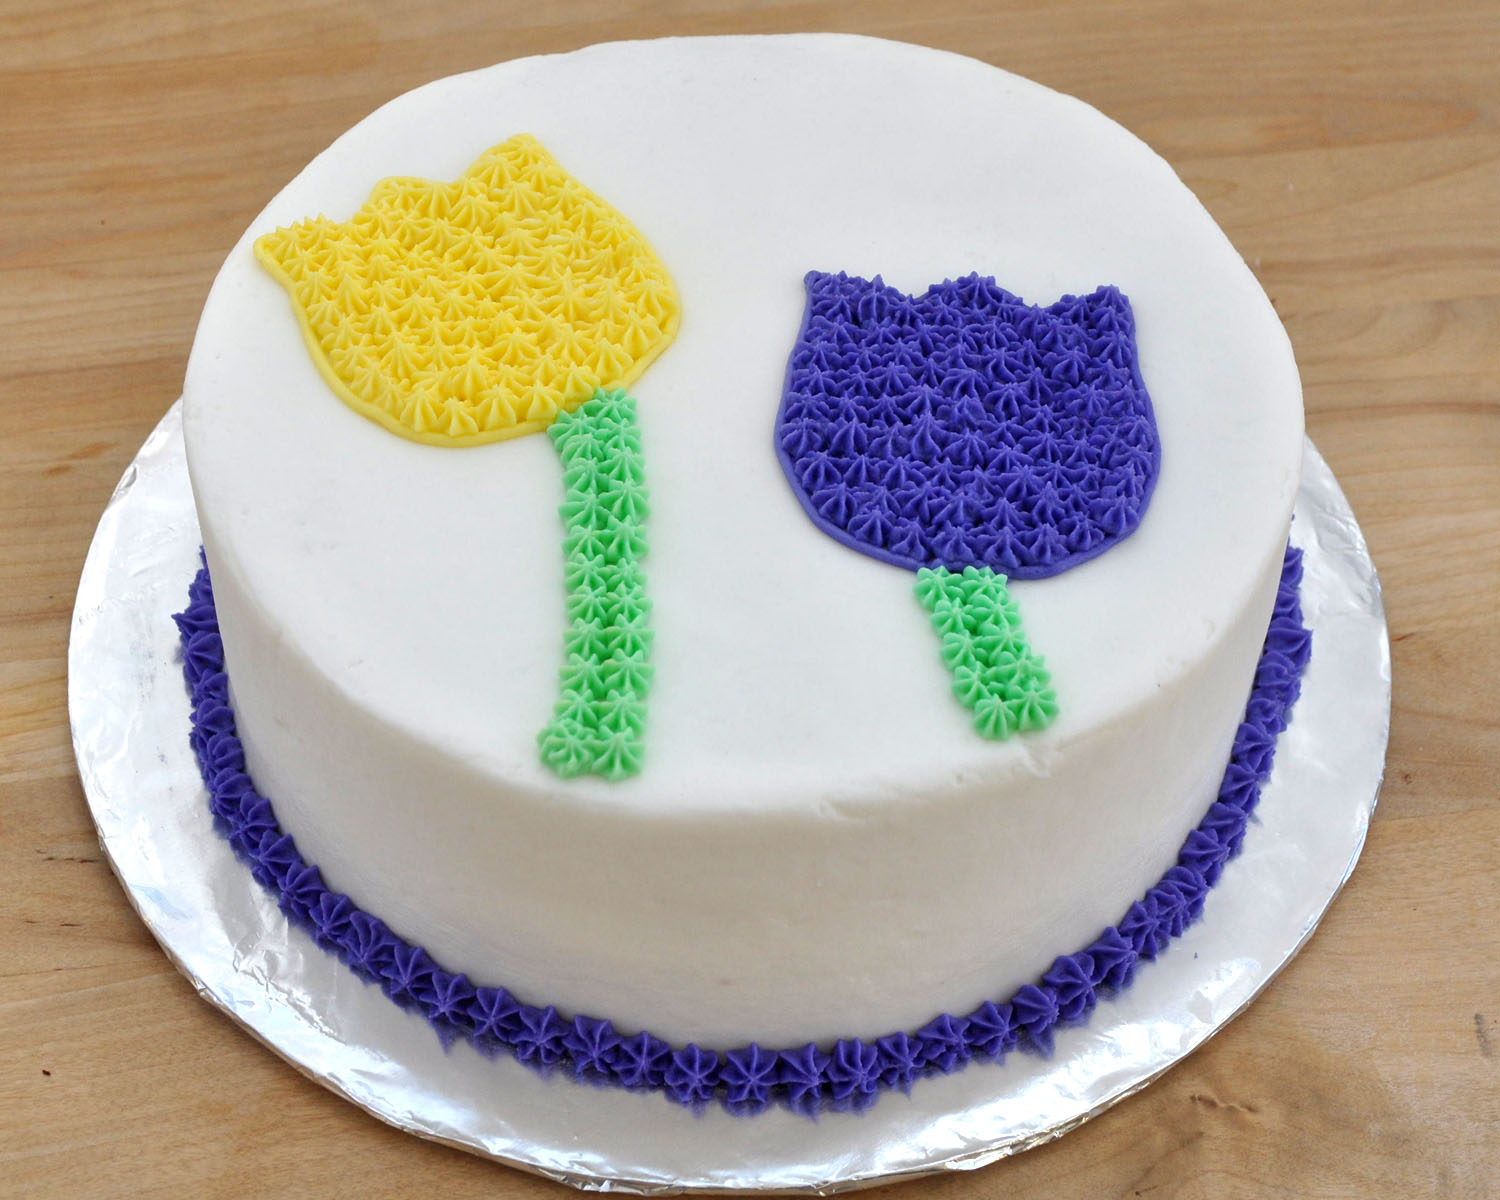 Simple Birthday Cake Decoration At Home : Beki Cook s Cake Blog: Cake Decorating 101 - Easy Birthday ...